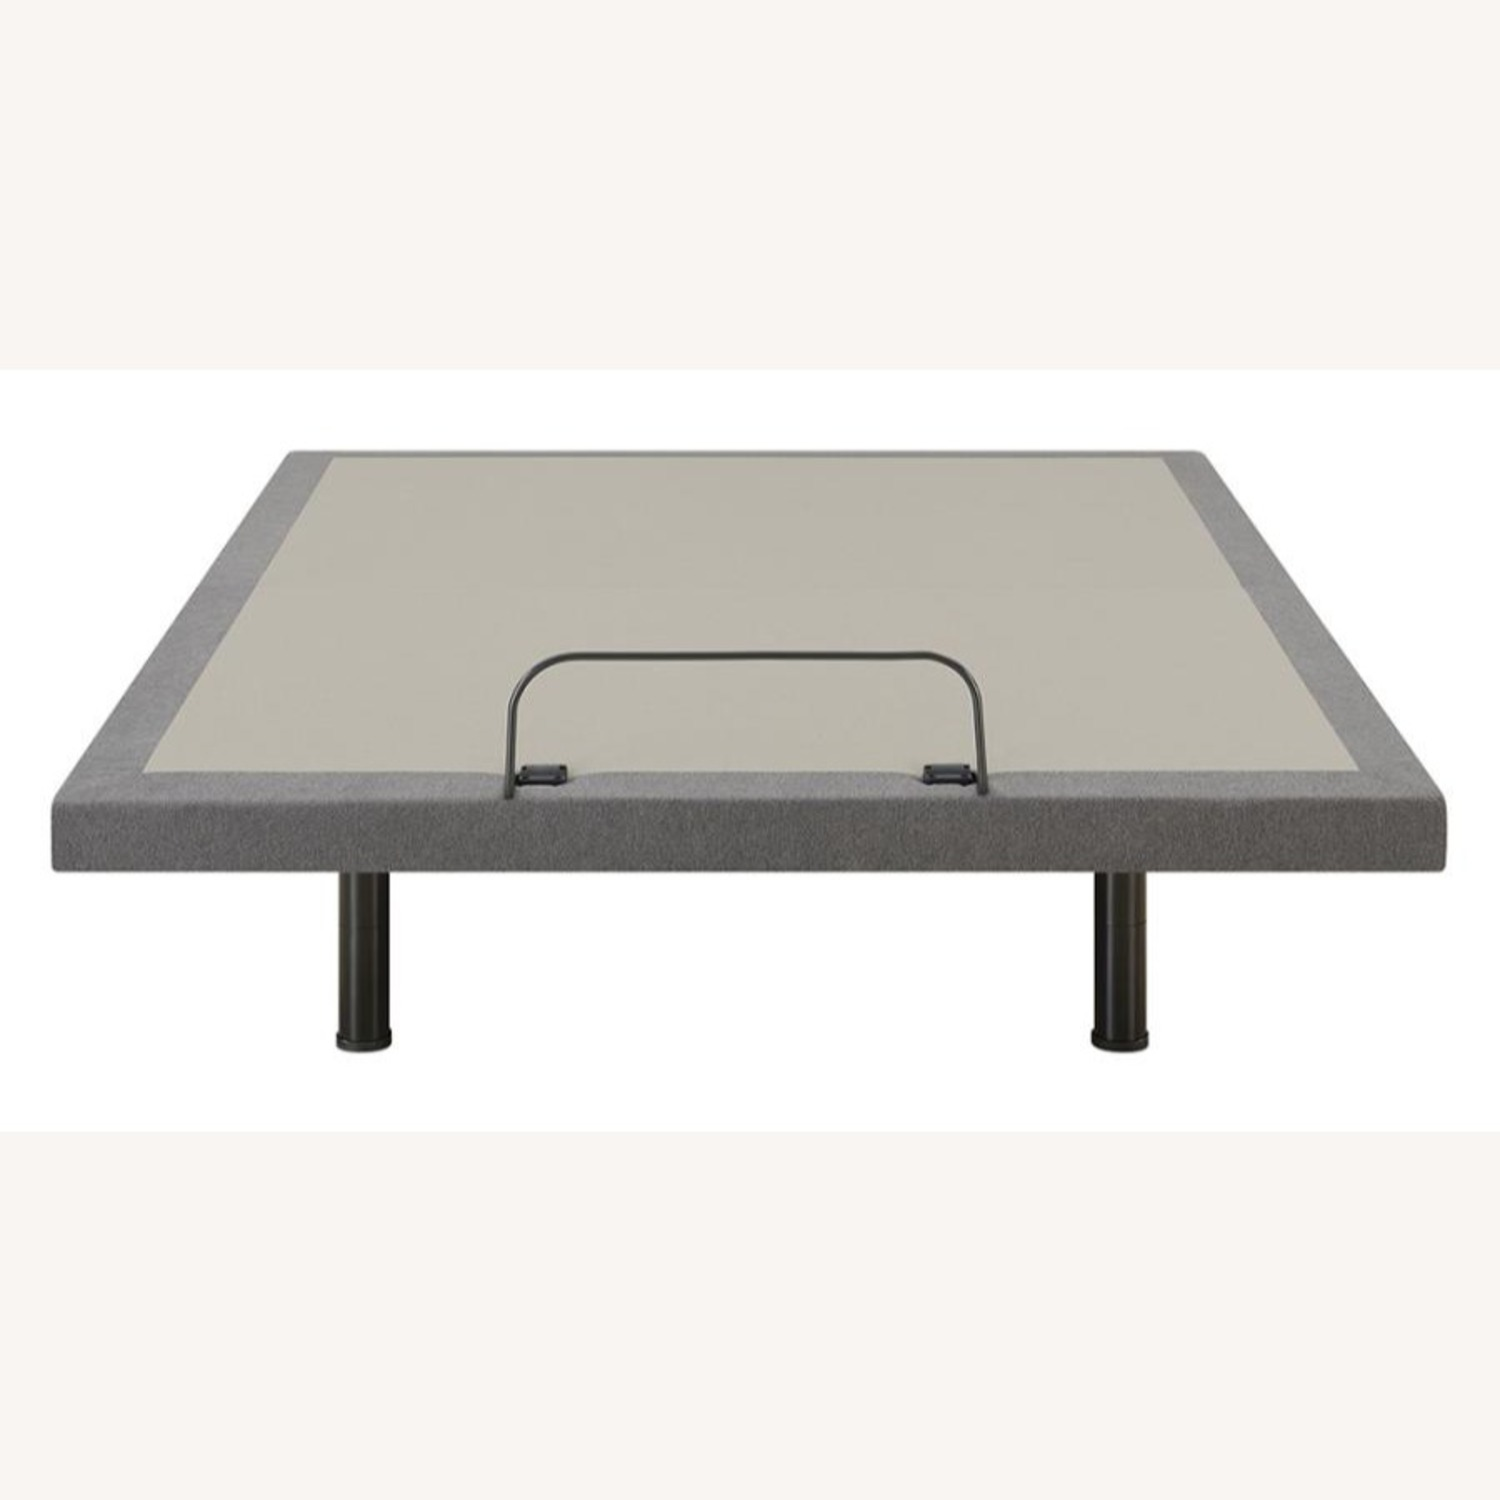 Twin XL Adjustable Bed Base In Grey Fabric Finish - image-3